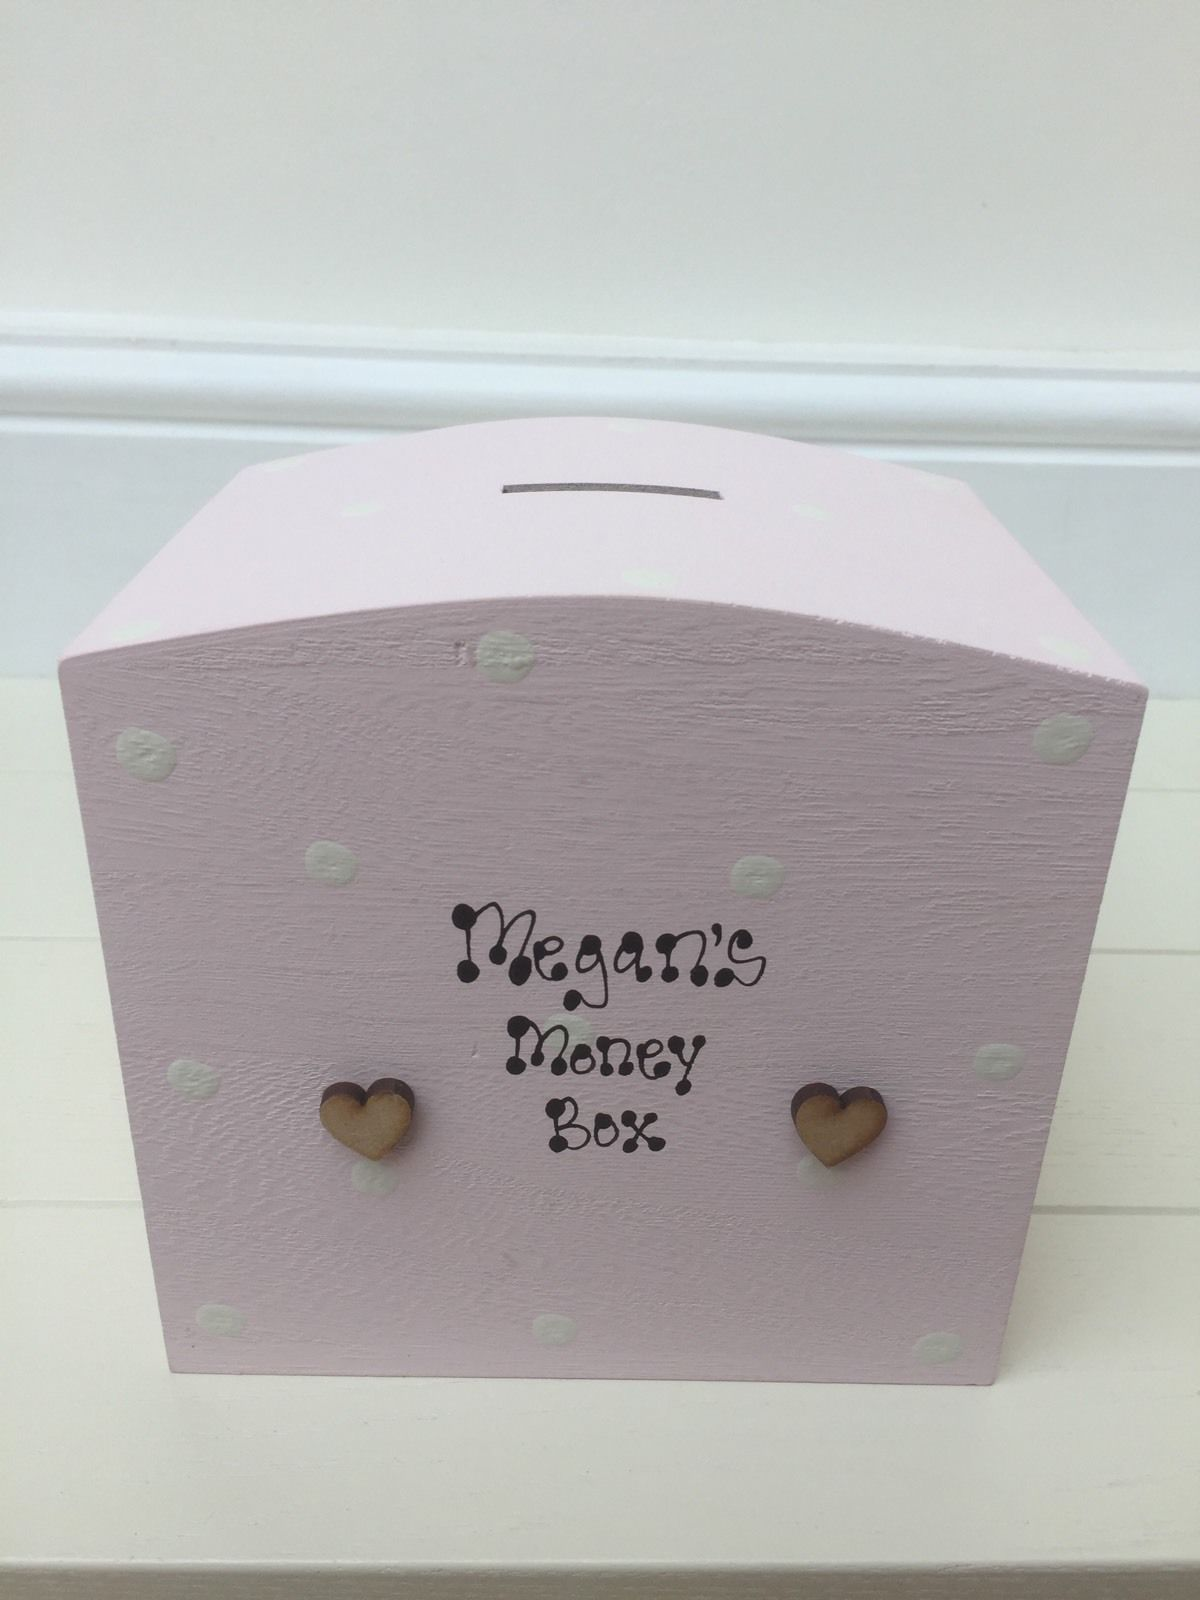 Shabby Money Box Chic Personalised Baby Girl 1st 2nd 3rd Birthday Gift Present